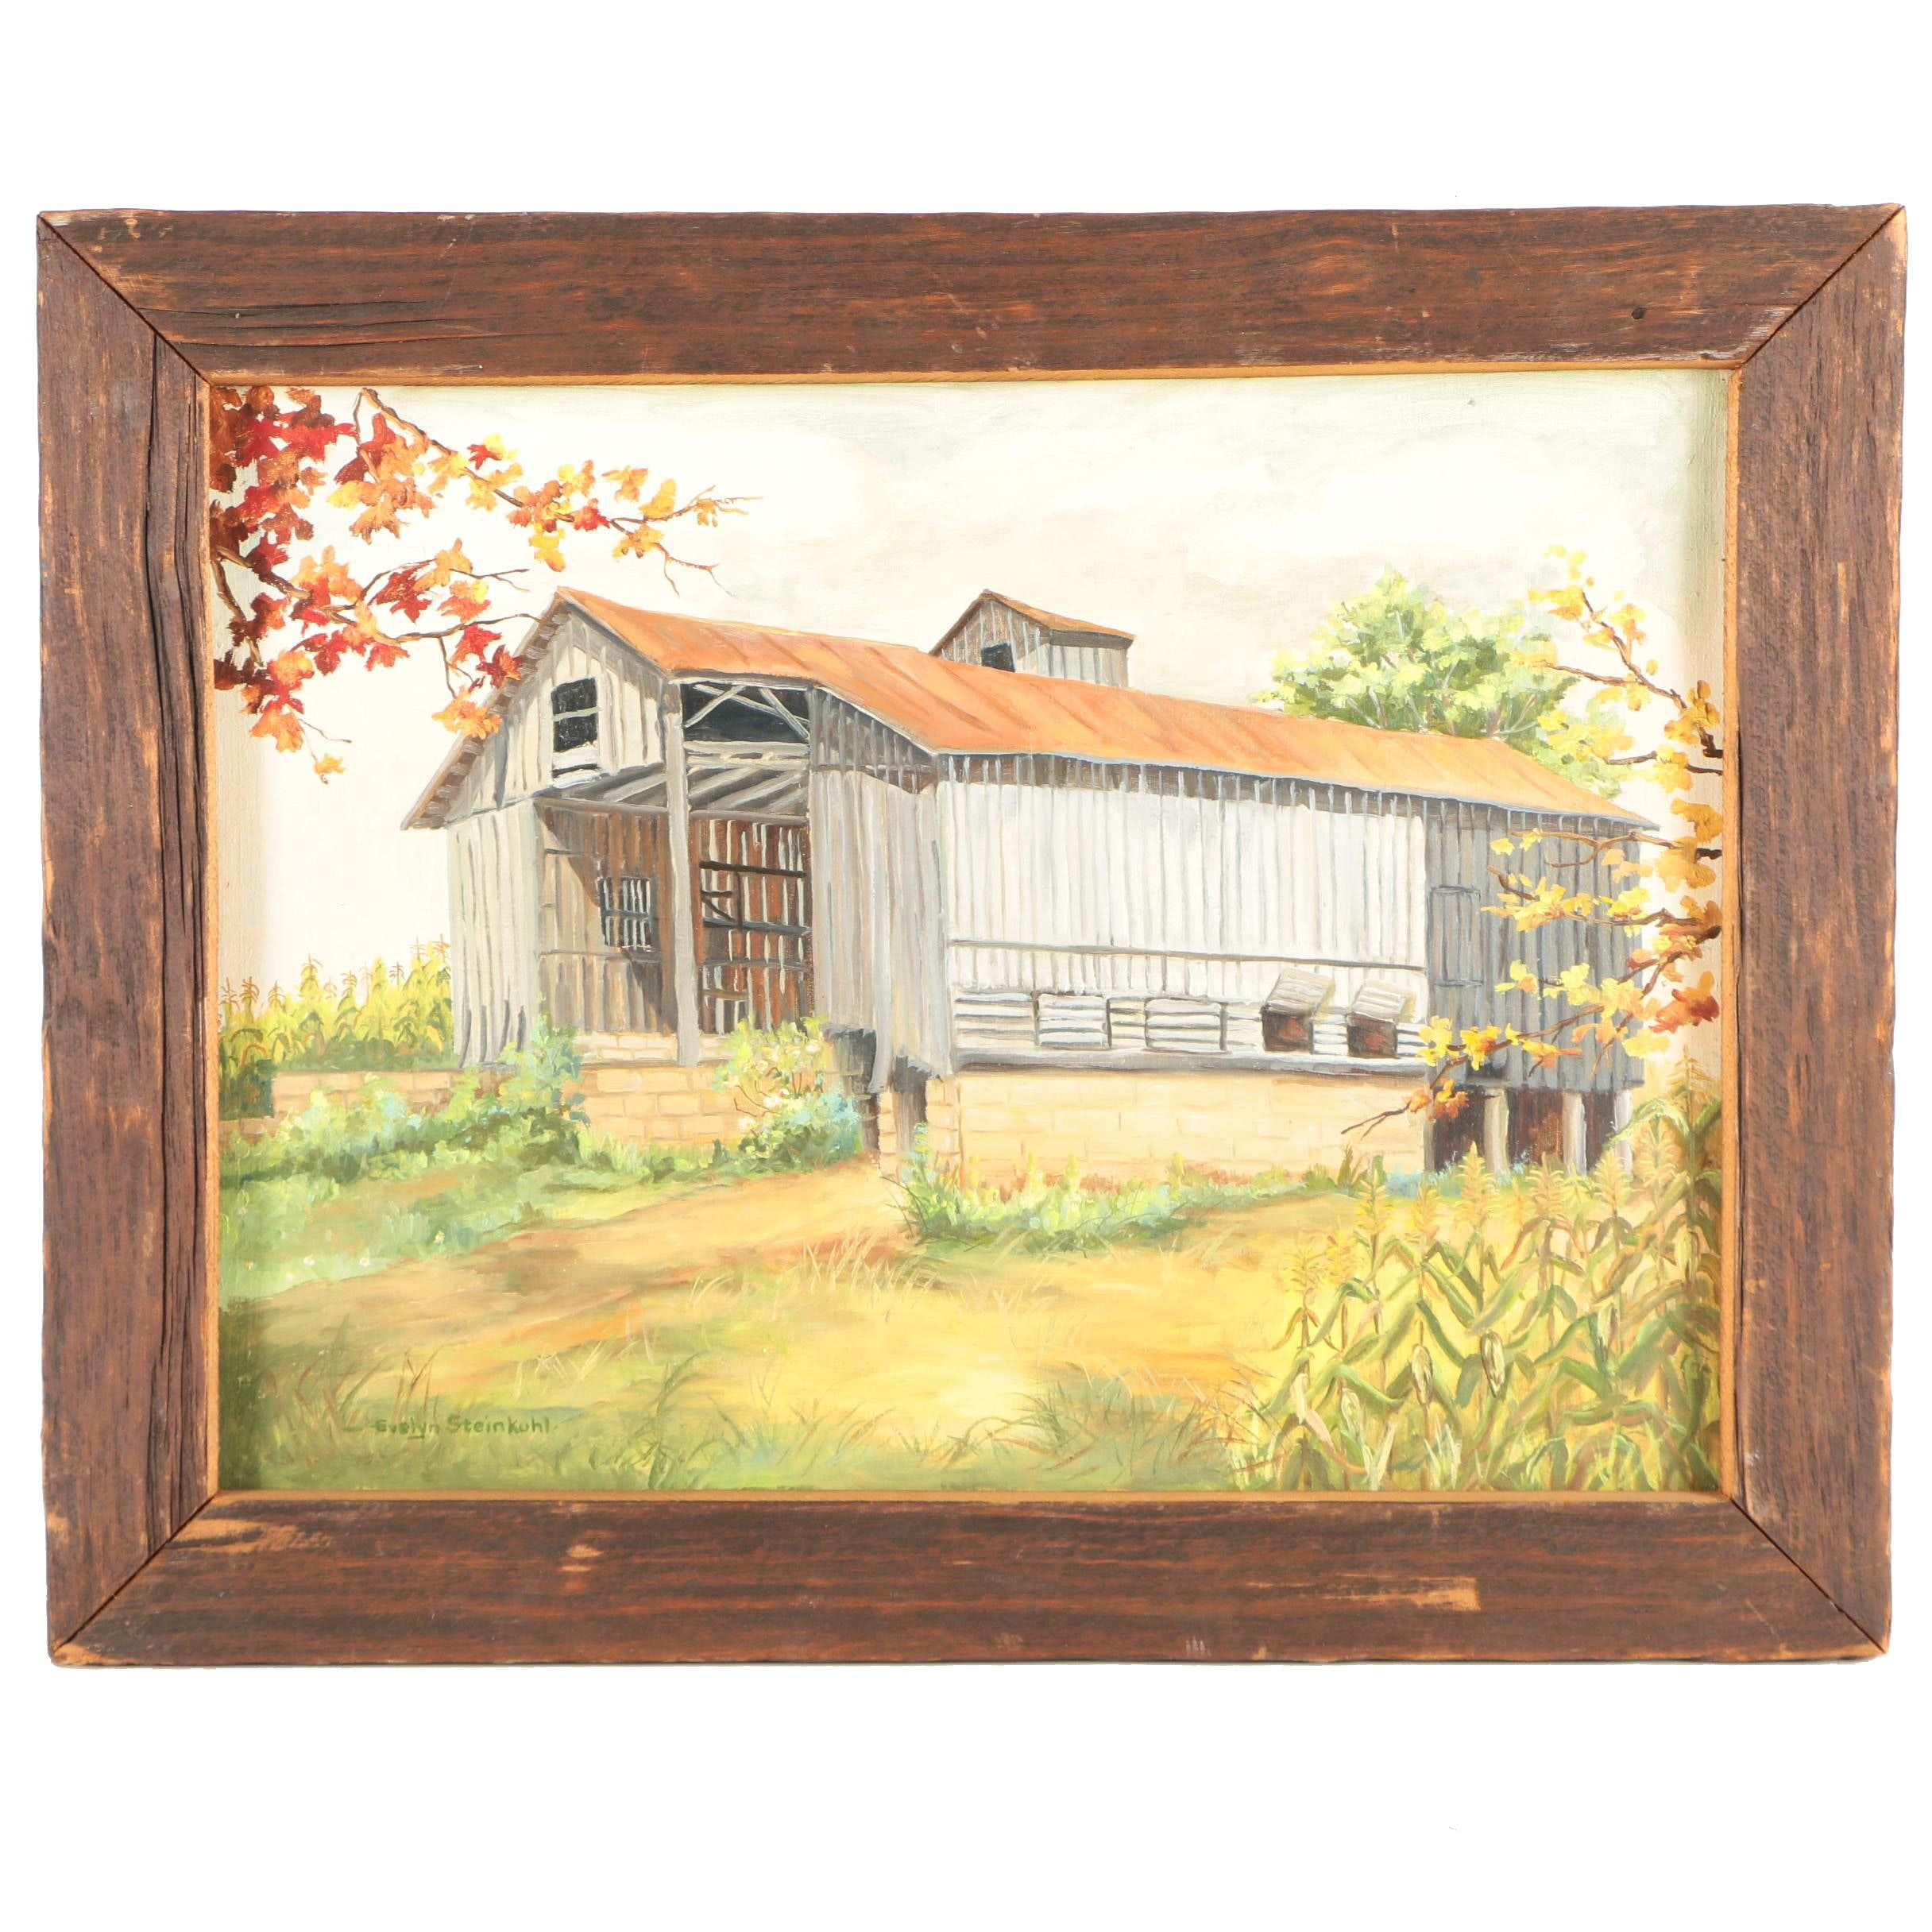 Evelyn Steinkuhl Oil Painting of Barn